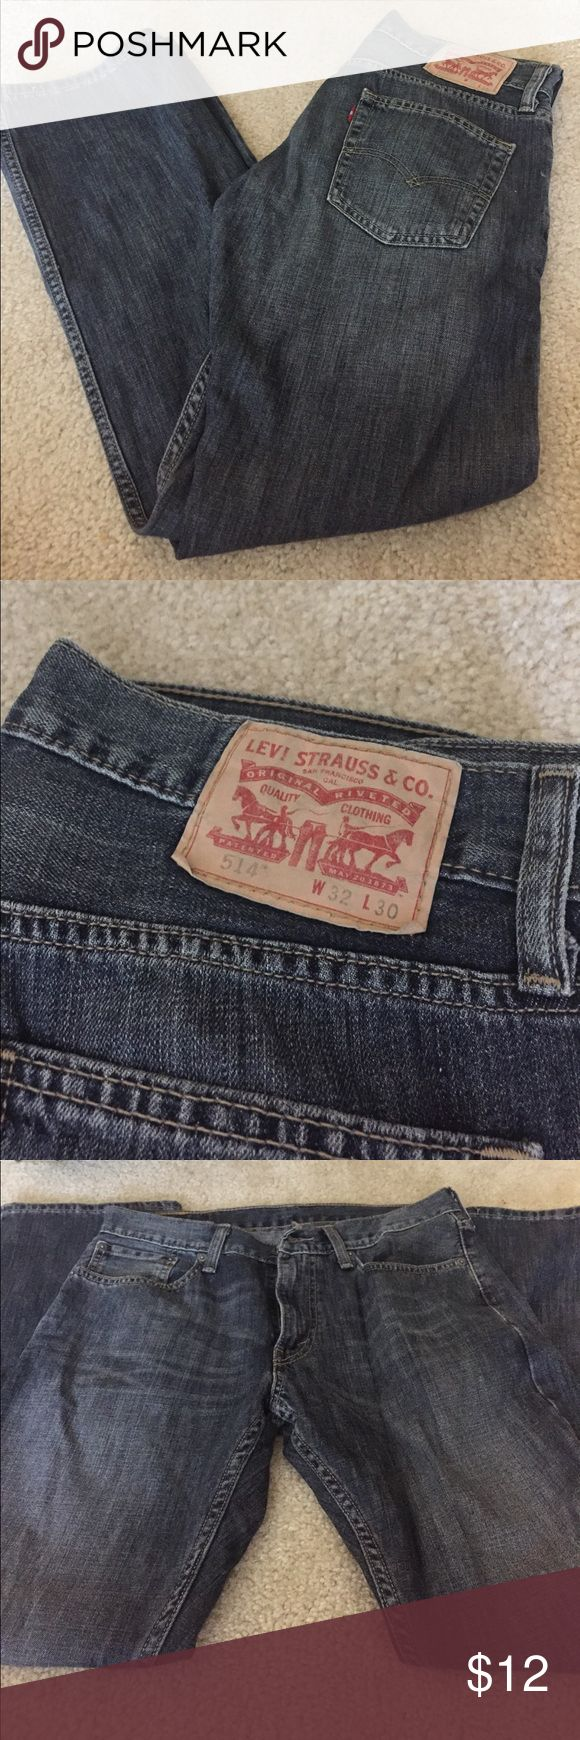 Mens Levi Jeans Men's Levi Straight Fit Jeans. Washed out blue jeans. Style 514, size W32 L30. Great condition - no rips or tears! Levi's Jeans Straight